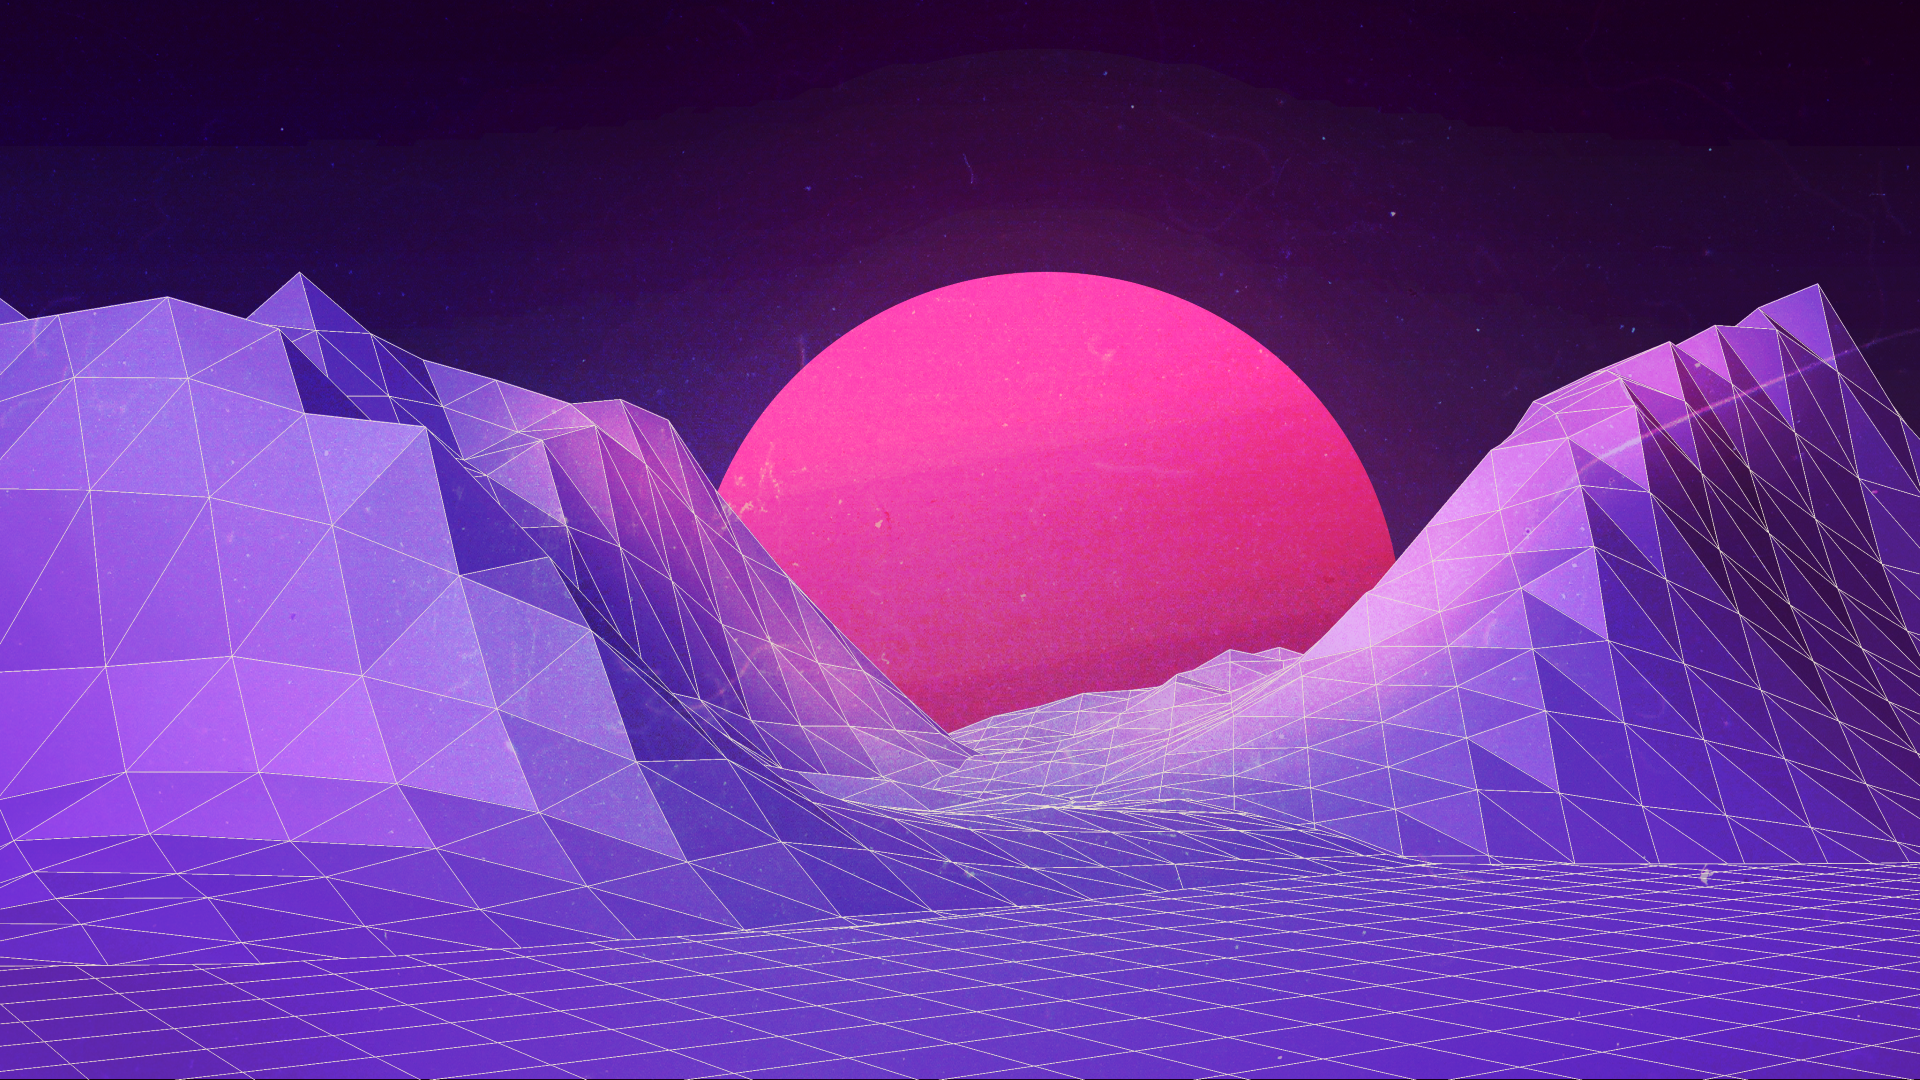 Aesthetic Vaporwave Wallpapers High Definition at Cool Monodomo 1920x1080